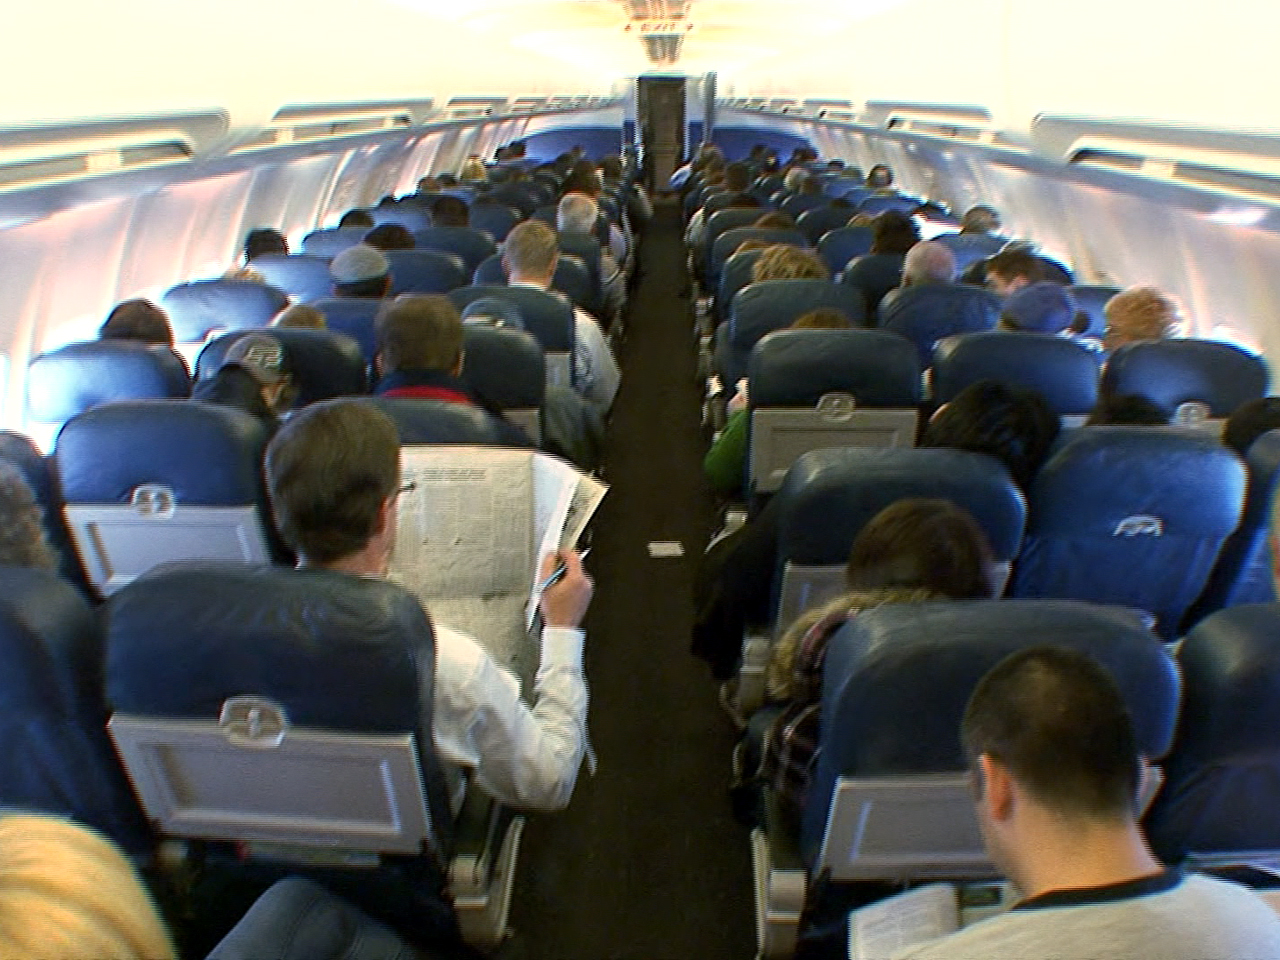 American Airlines to add more economy seats